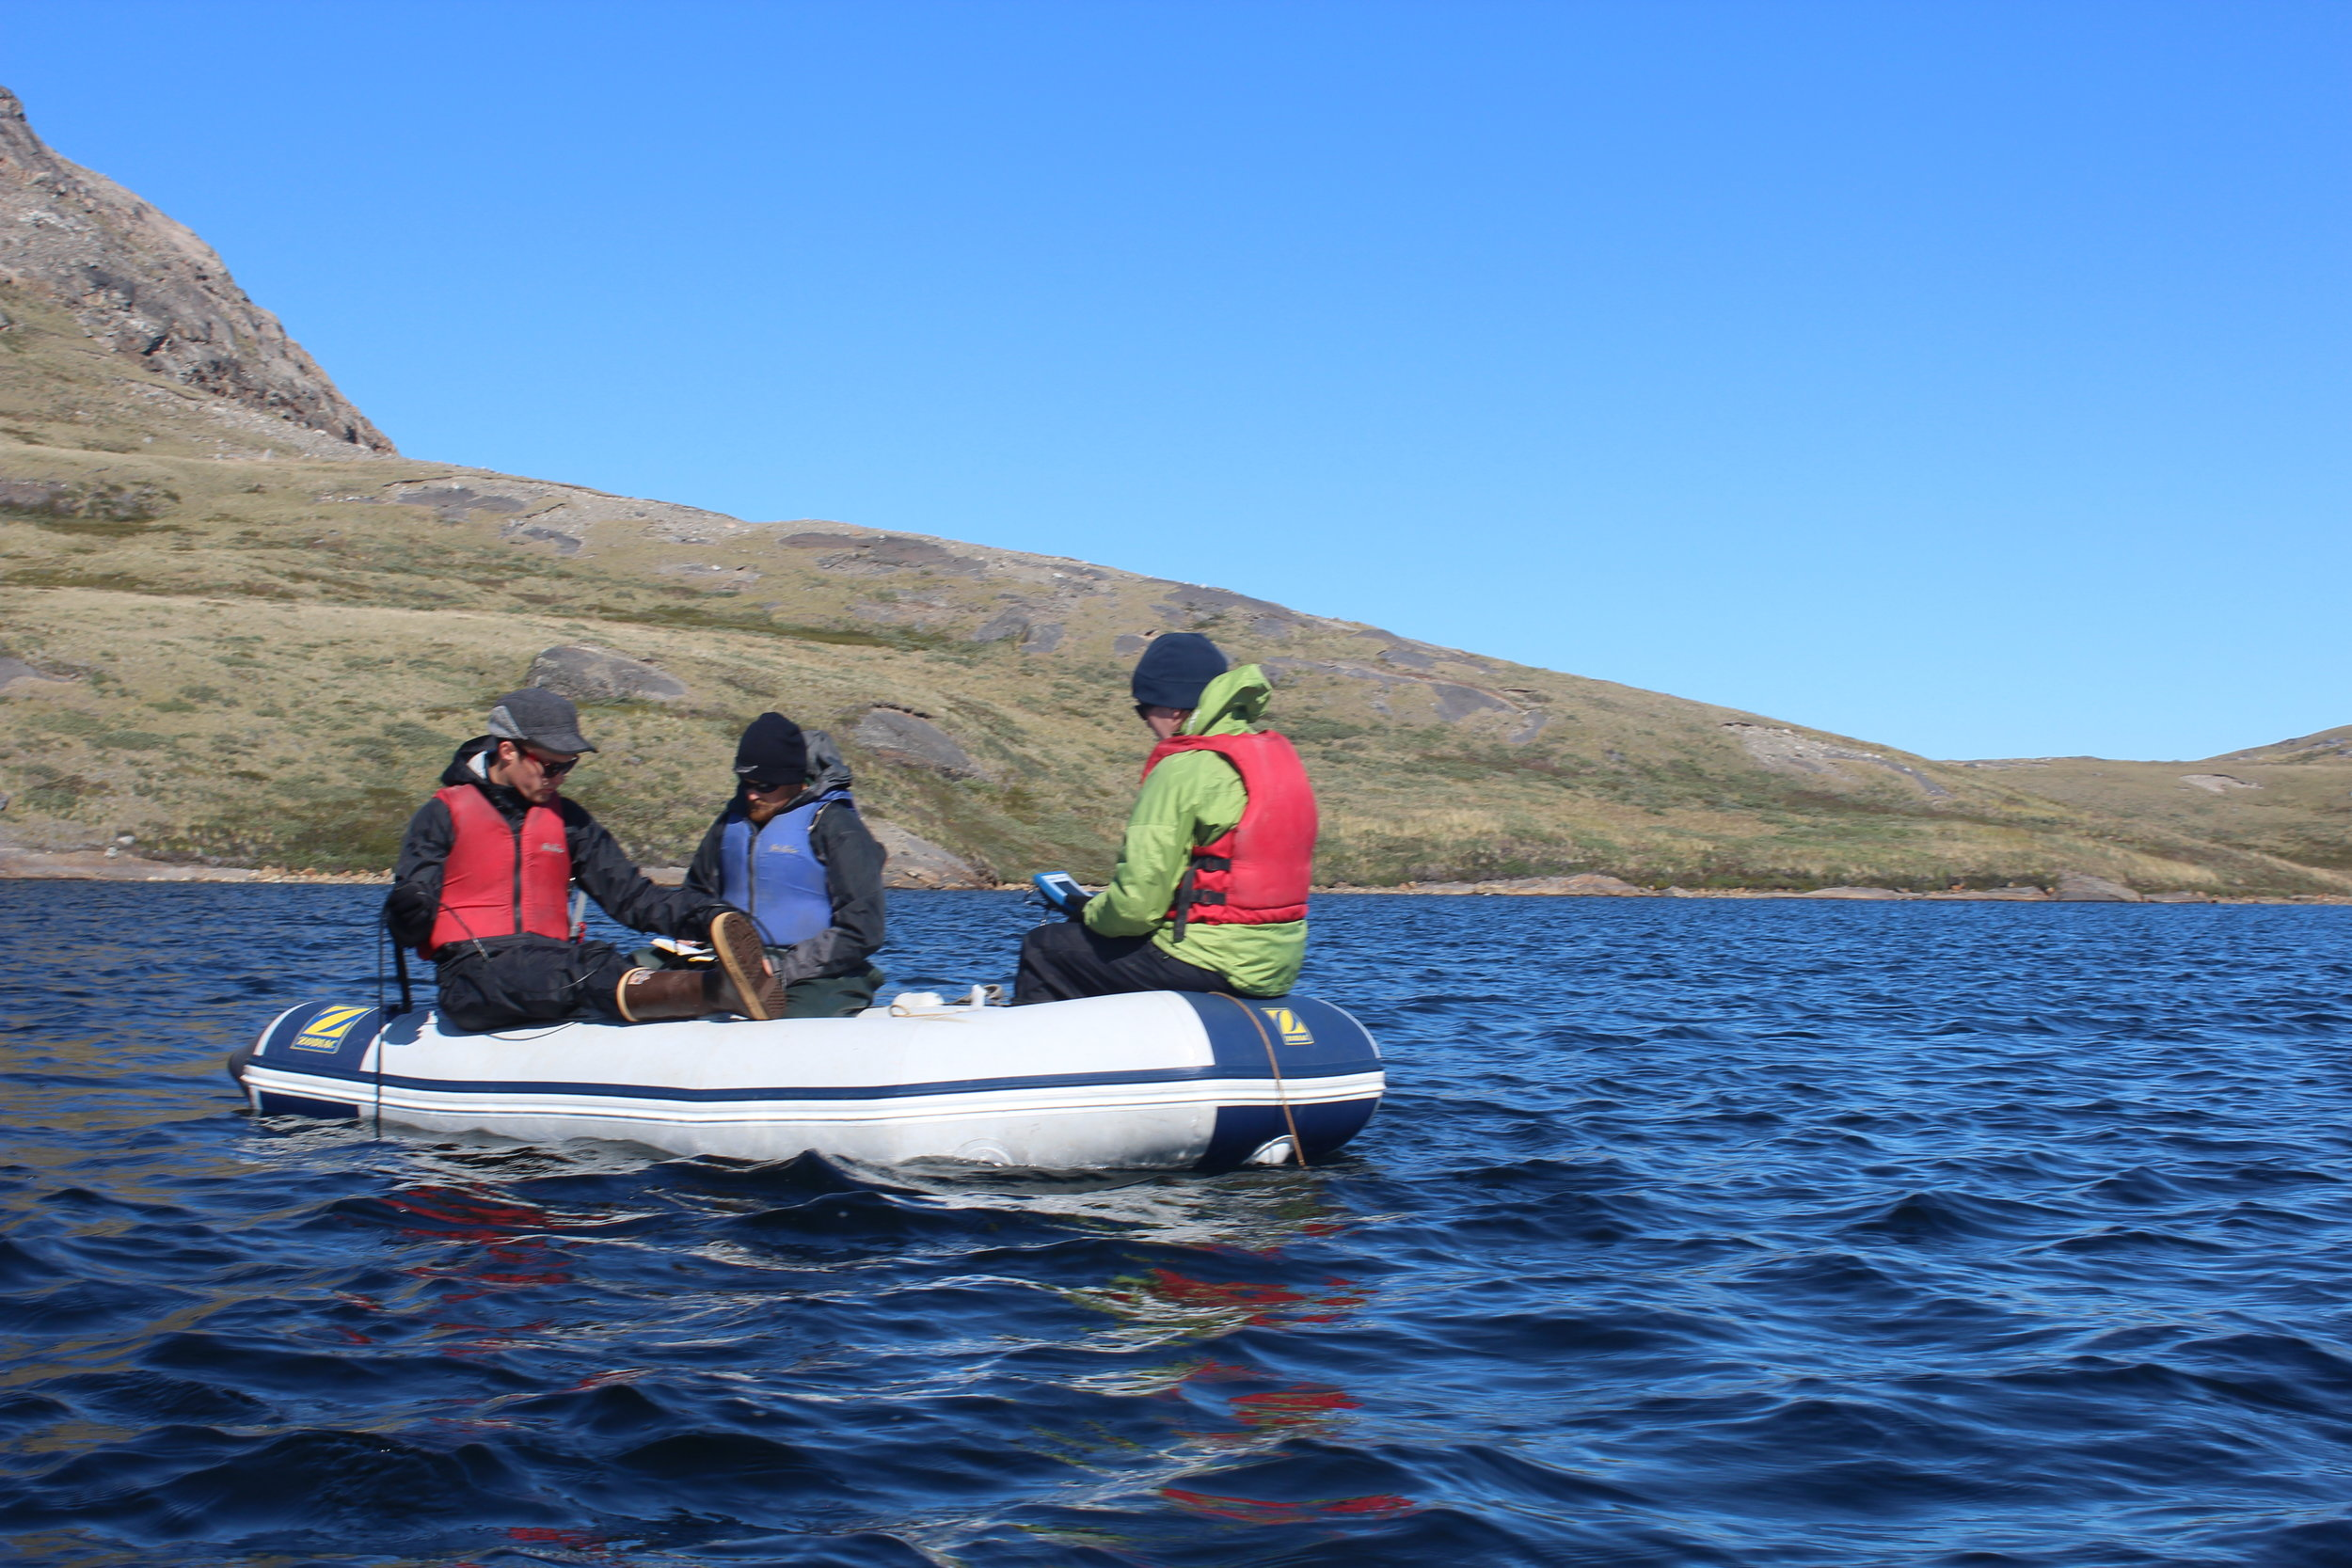 Saros and her team measuring the temperature of one of the lakes. Photo: Emily Rice